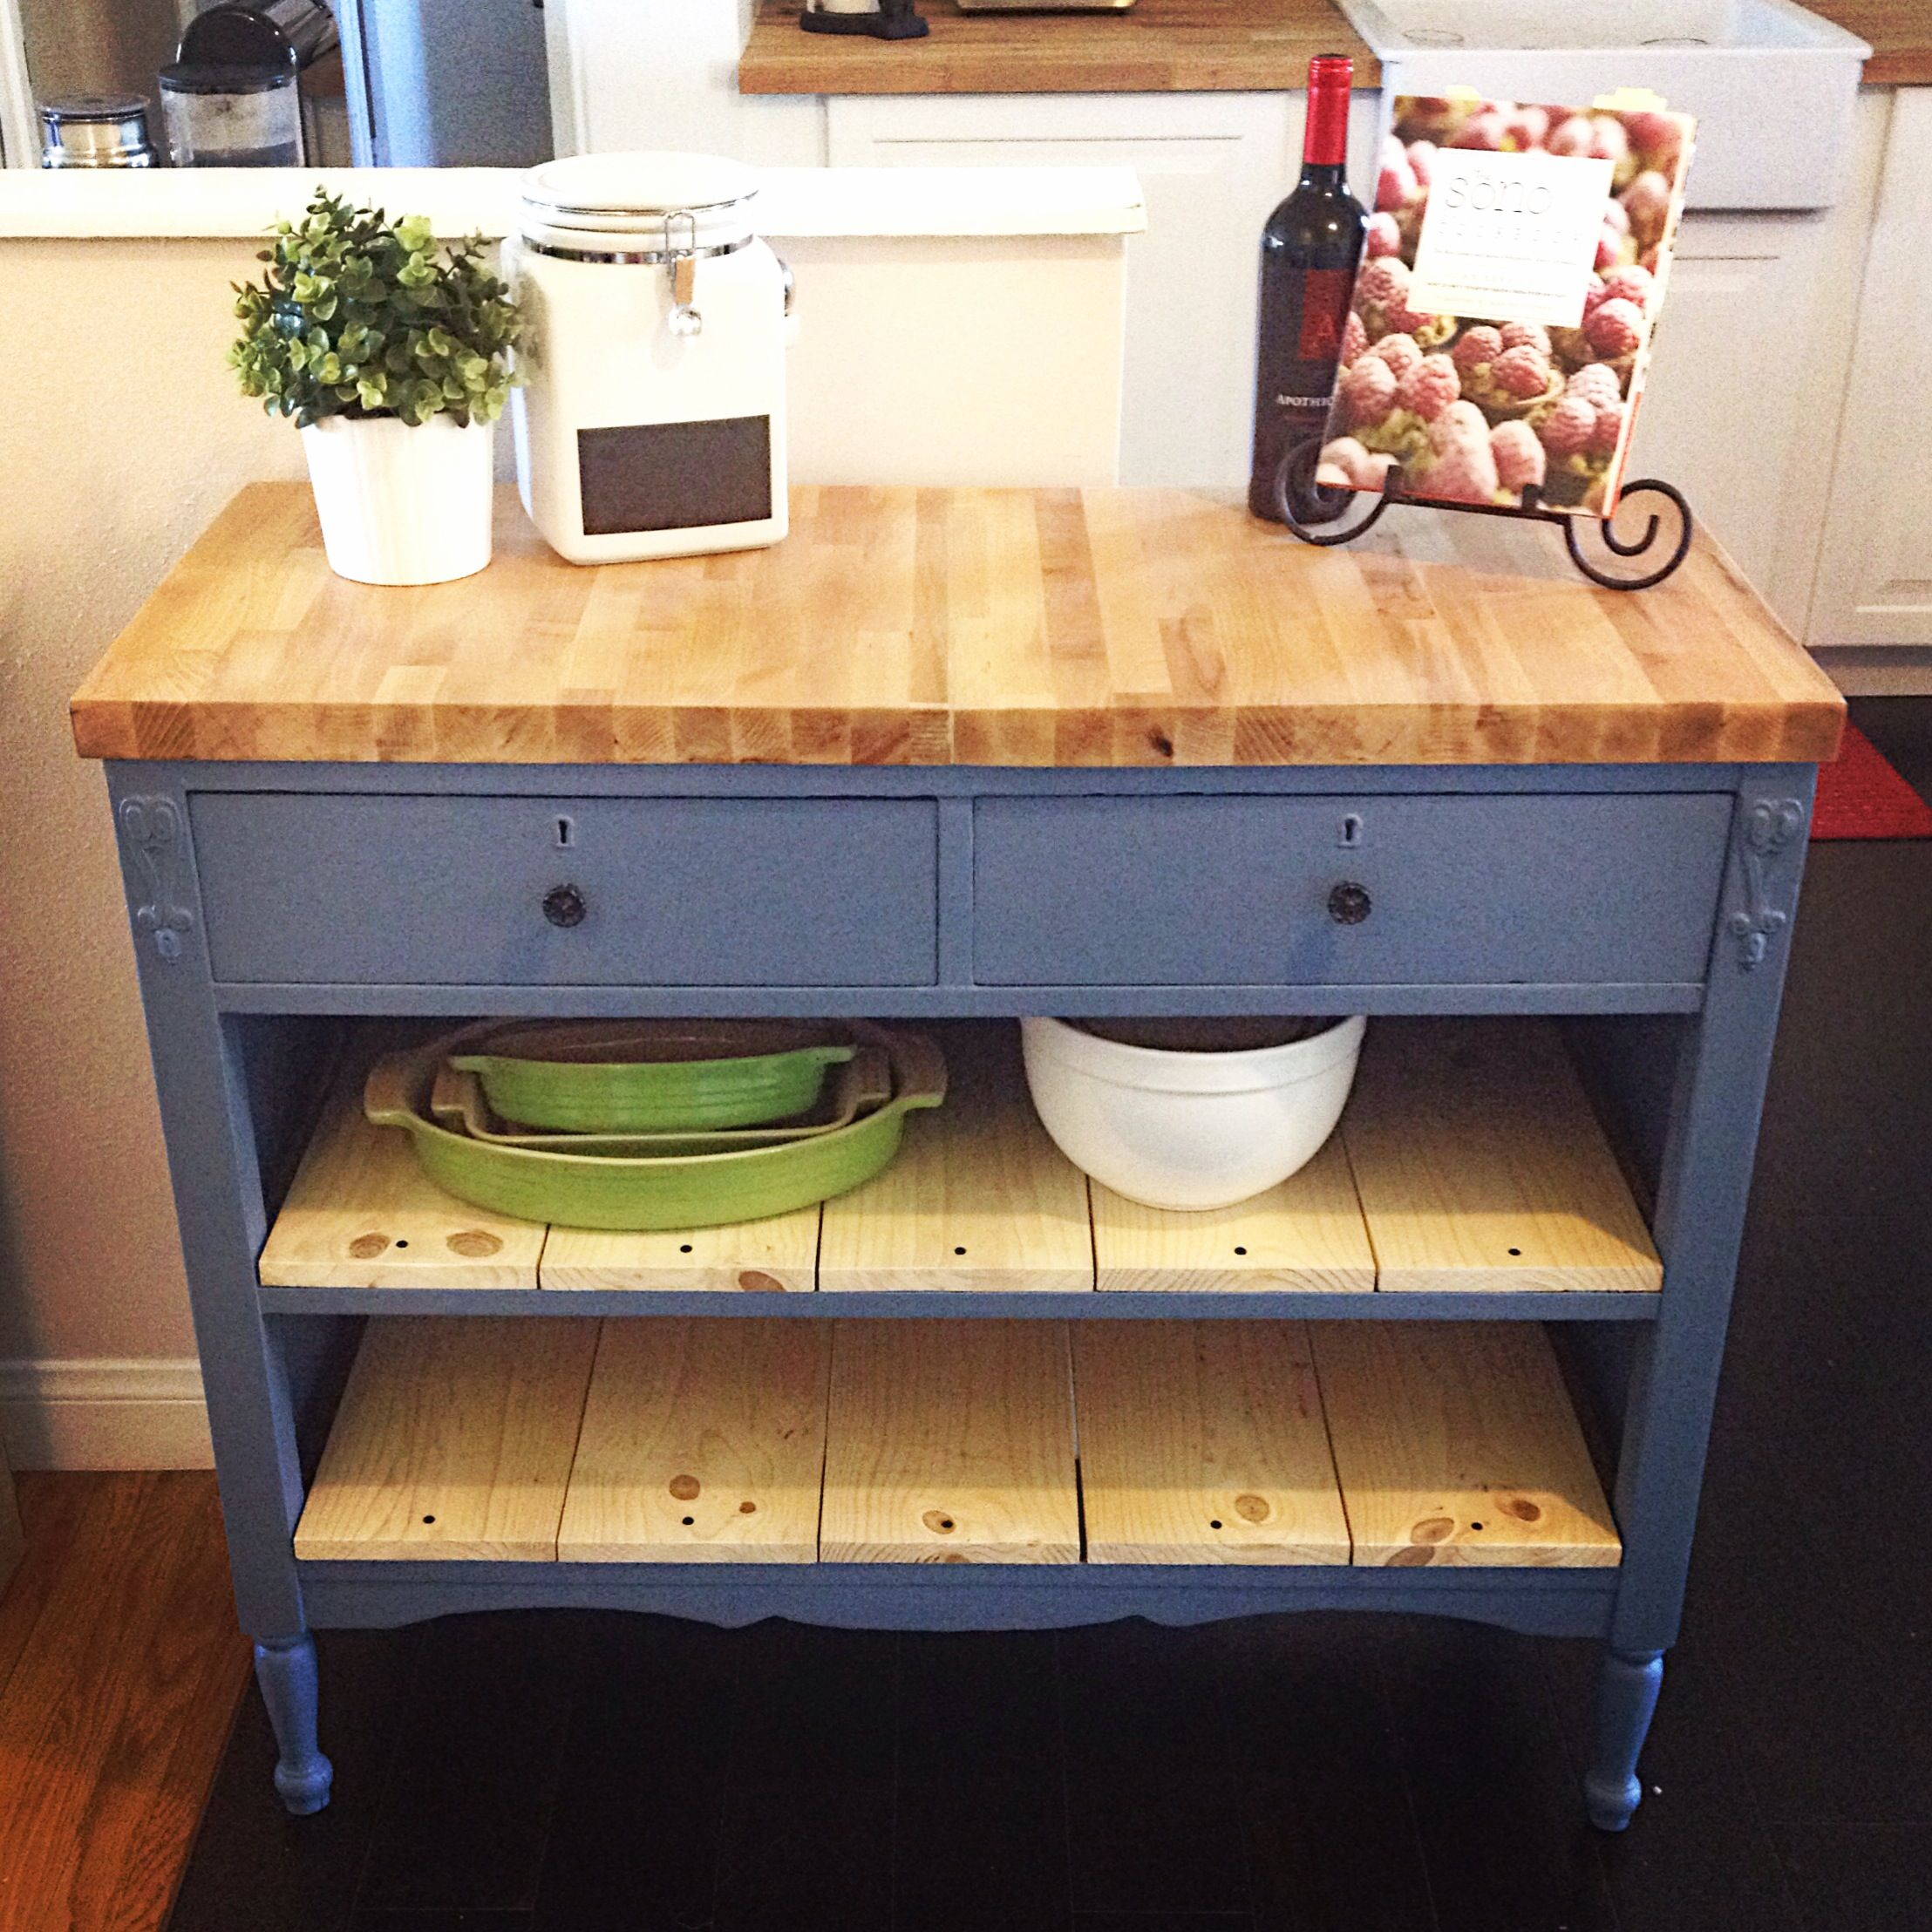 Kitchen Island Made From Antique Buffet: Repurposed Antique Dresser As A Kitchen Island With A Butcher Block Top.. Super Cute!!